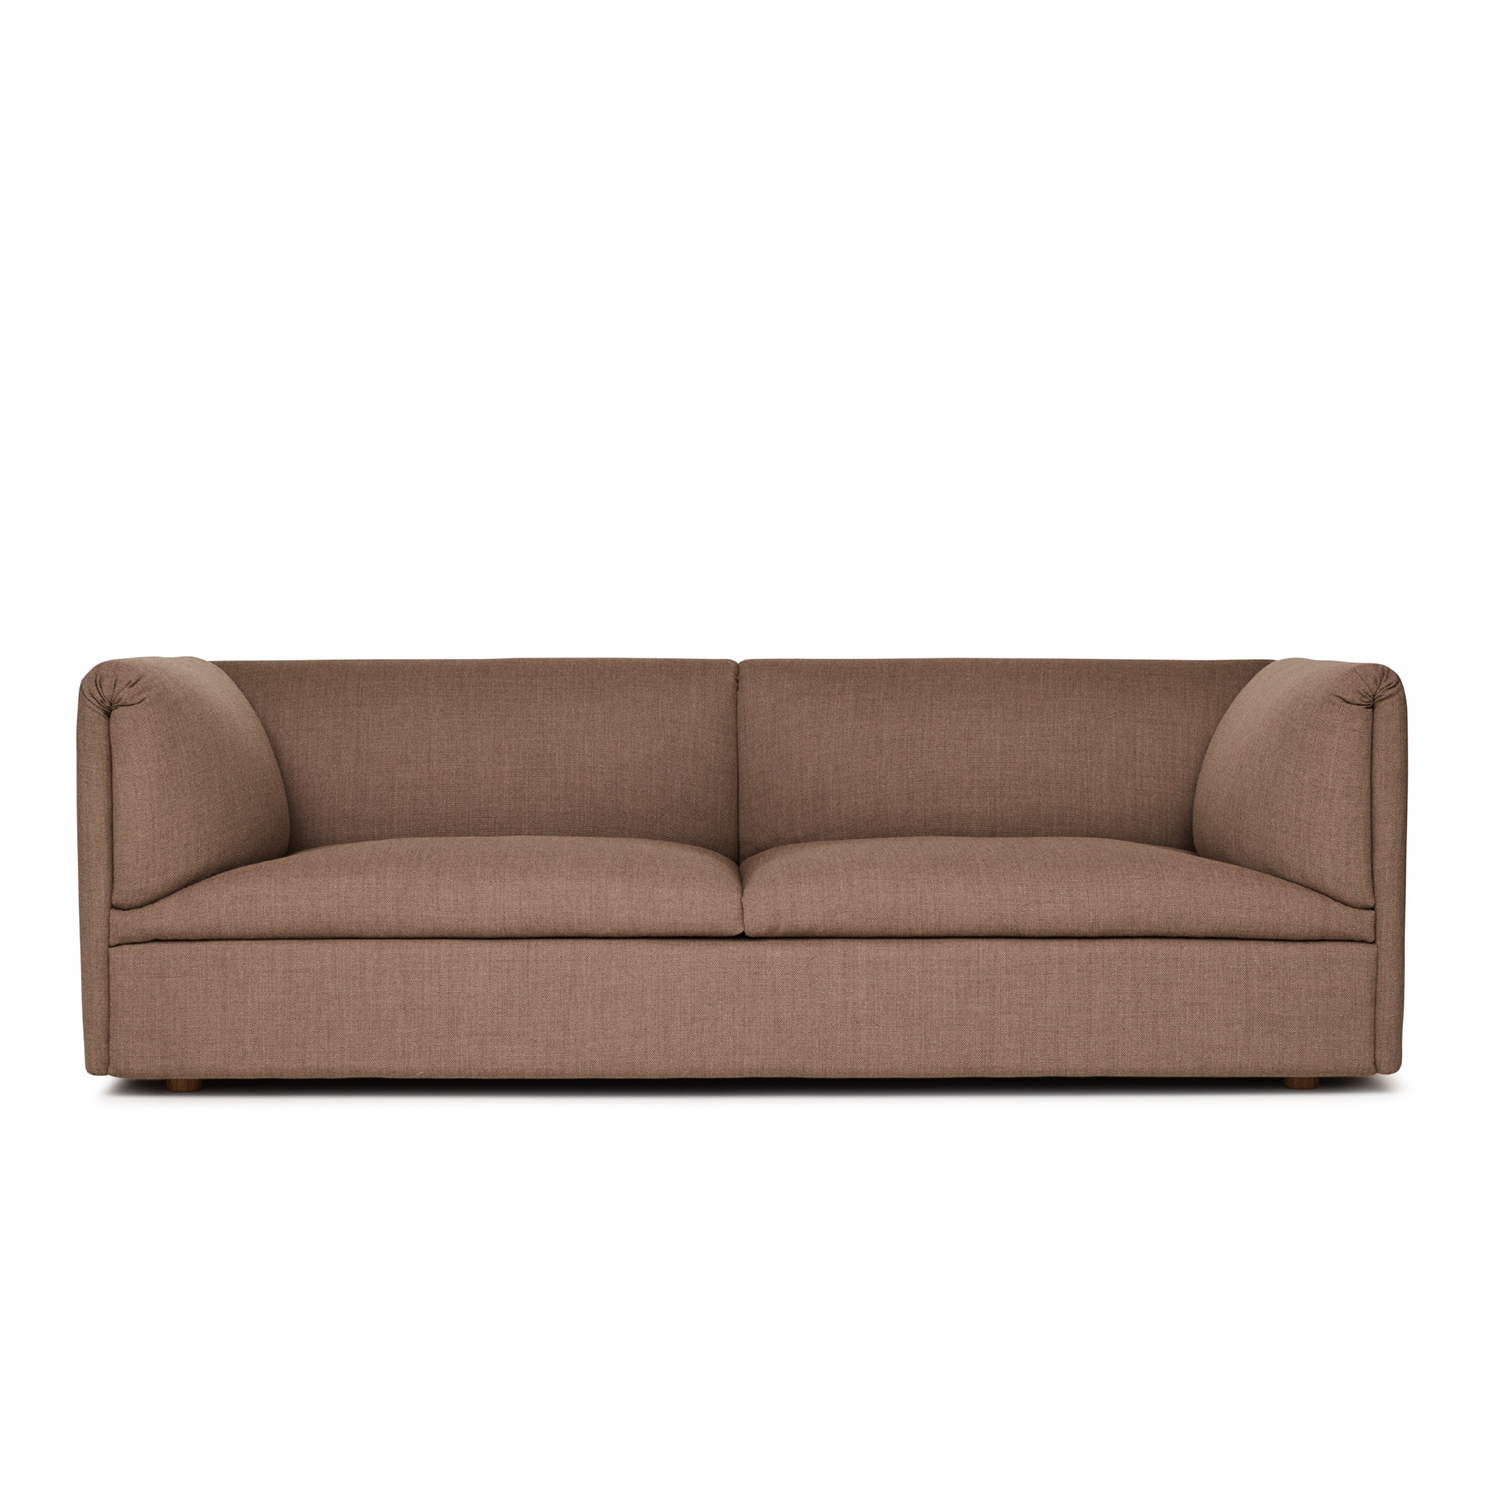 Fogia Retreat sofa 2,5 seat